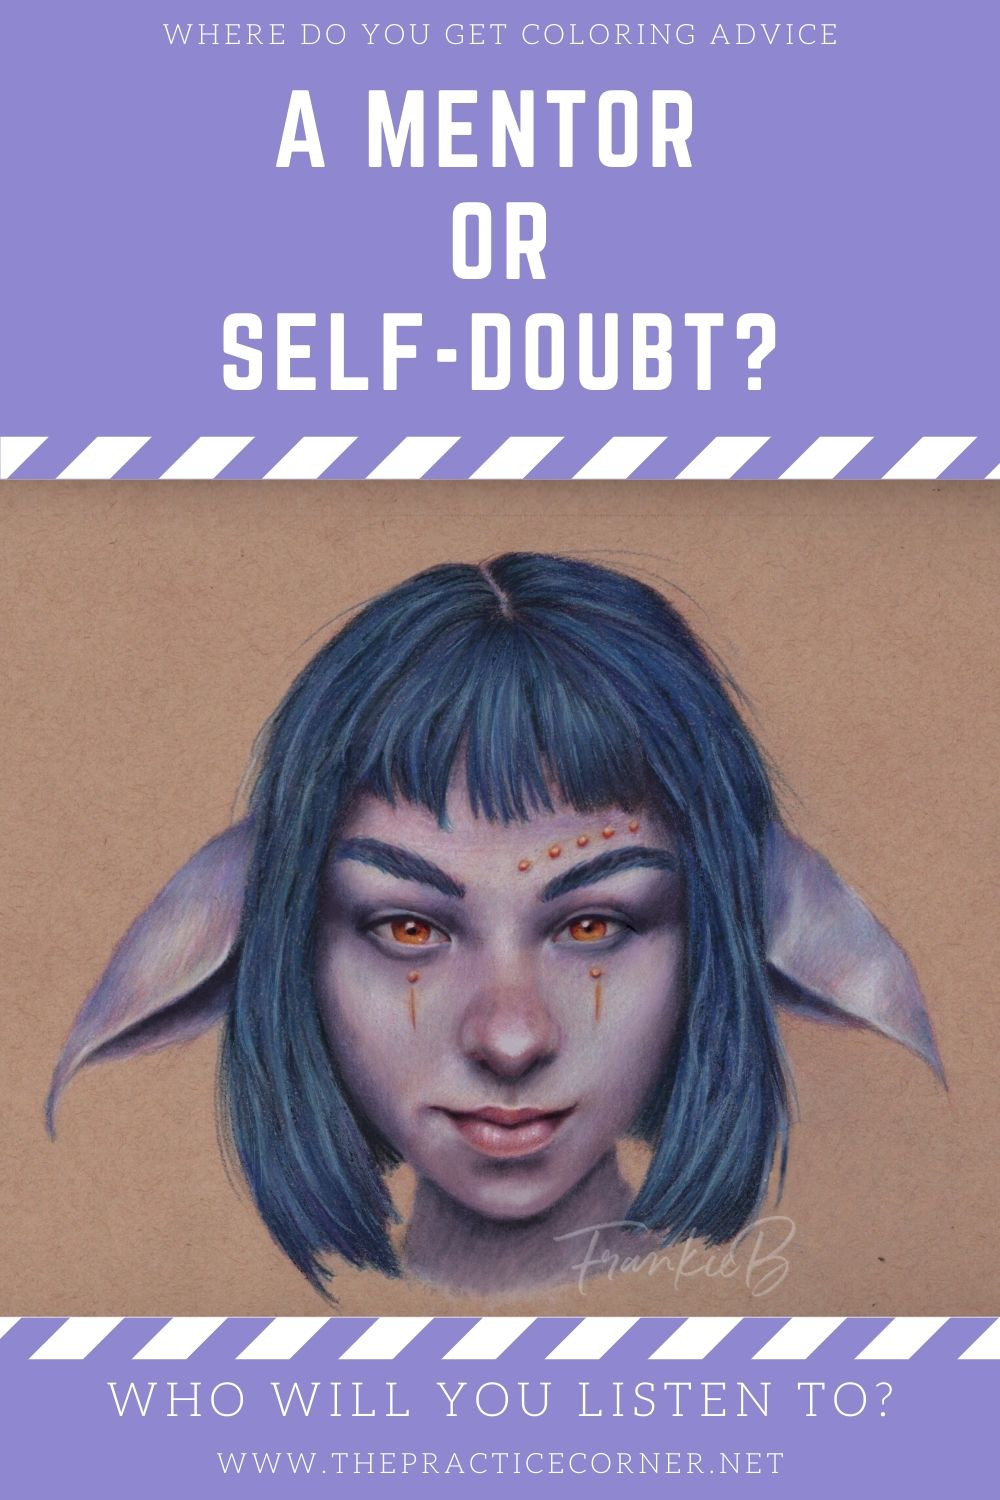 Listen to your mentor for valid coloring advice, ignore your inner voice when it's full of self doubt.  How to improve your coloring | What to practice to improve my coloring #coloredpencil #coloredpencilpractice #copicmarker #copicmarkerpractice